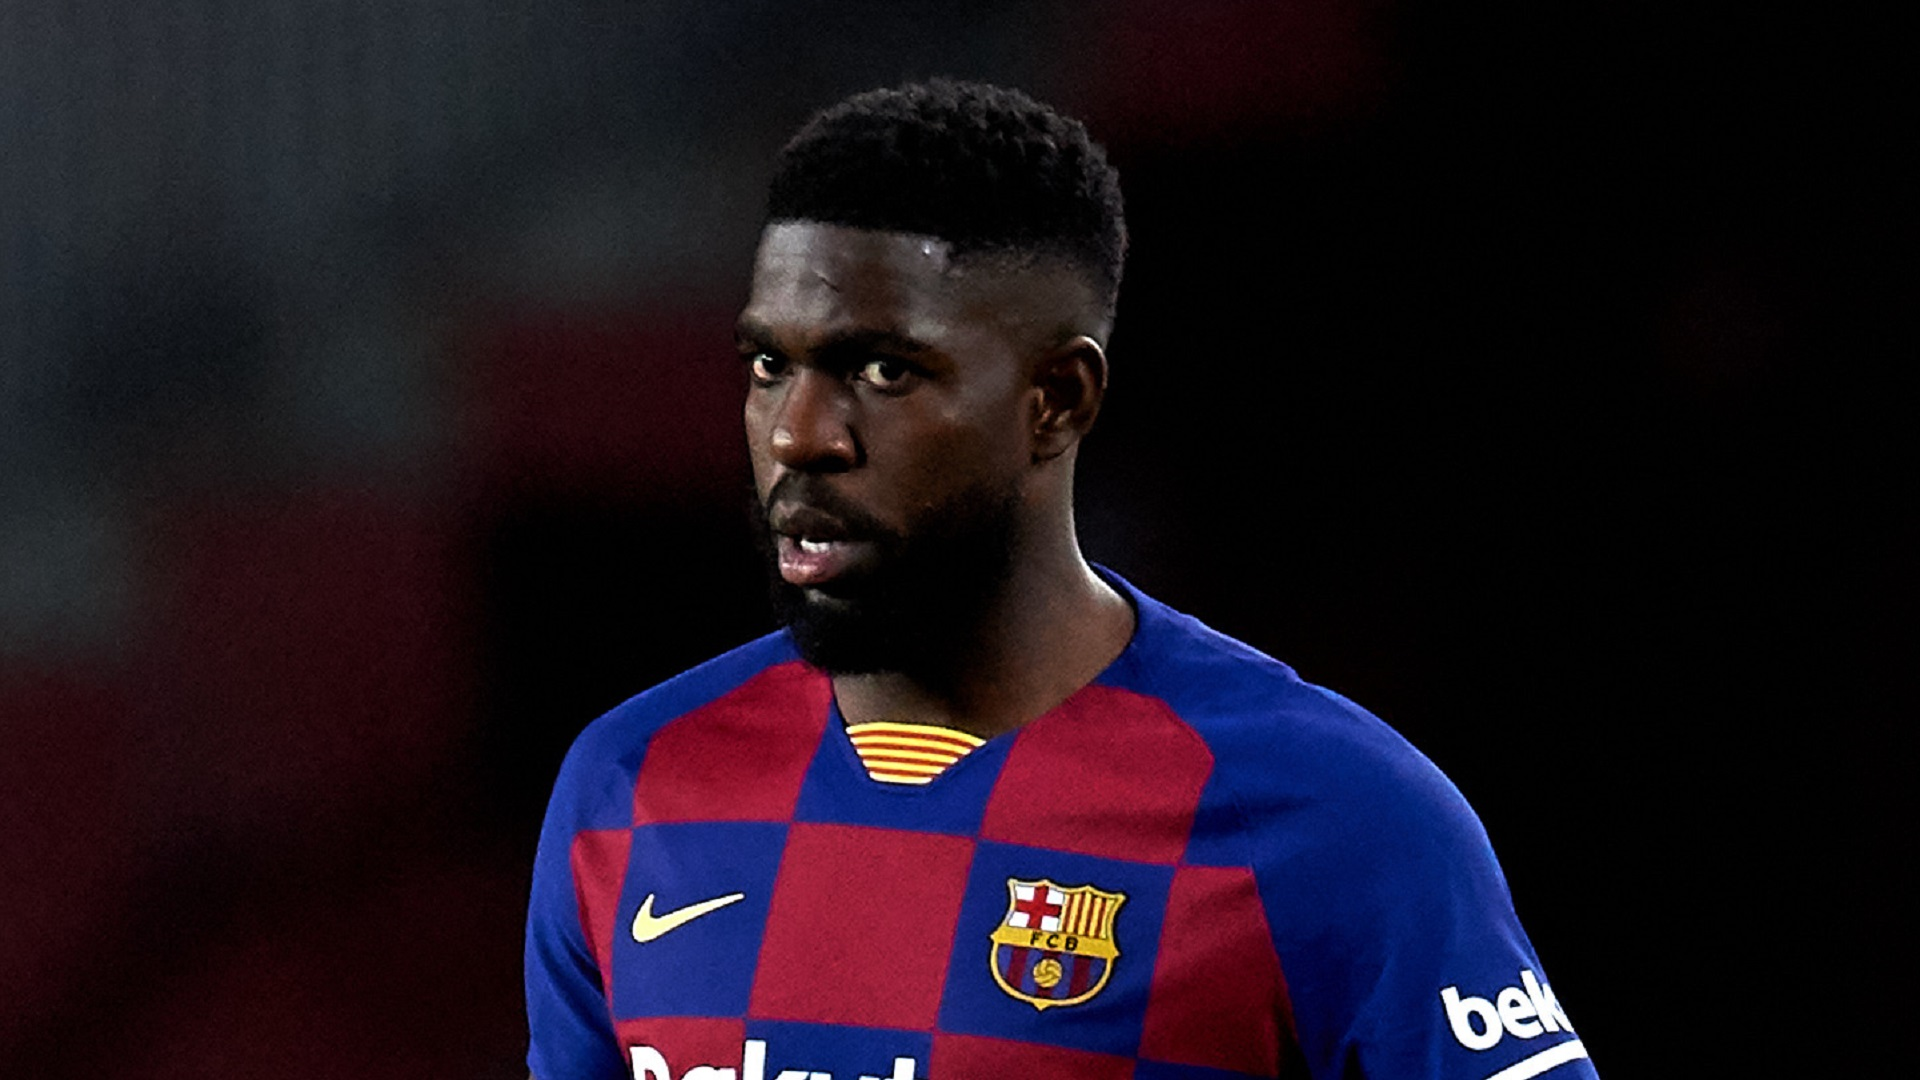 FC Barcelona said on Friday that France defender Samuel Umtiti has tested positive for COVID-19. However, the test result did not affect their UEFA Champions League quarter-final with Bayern Munich on Friday as he is injured and not with the squad. Umtiti is the second Barca player to give a positive test for COVID-19 in […]